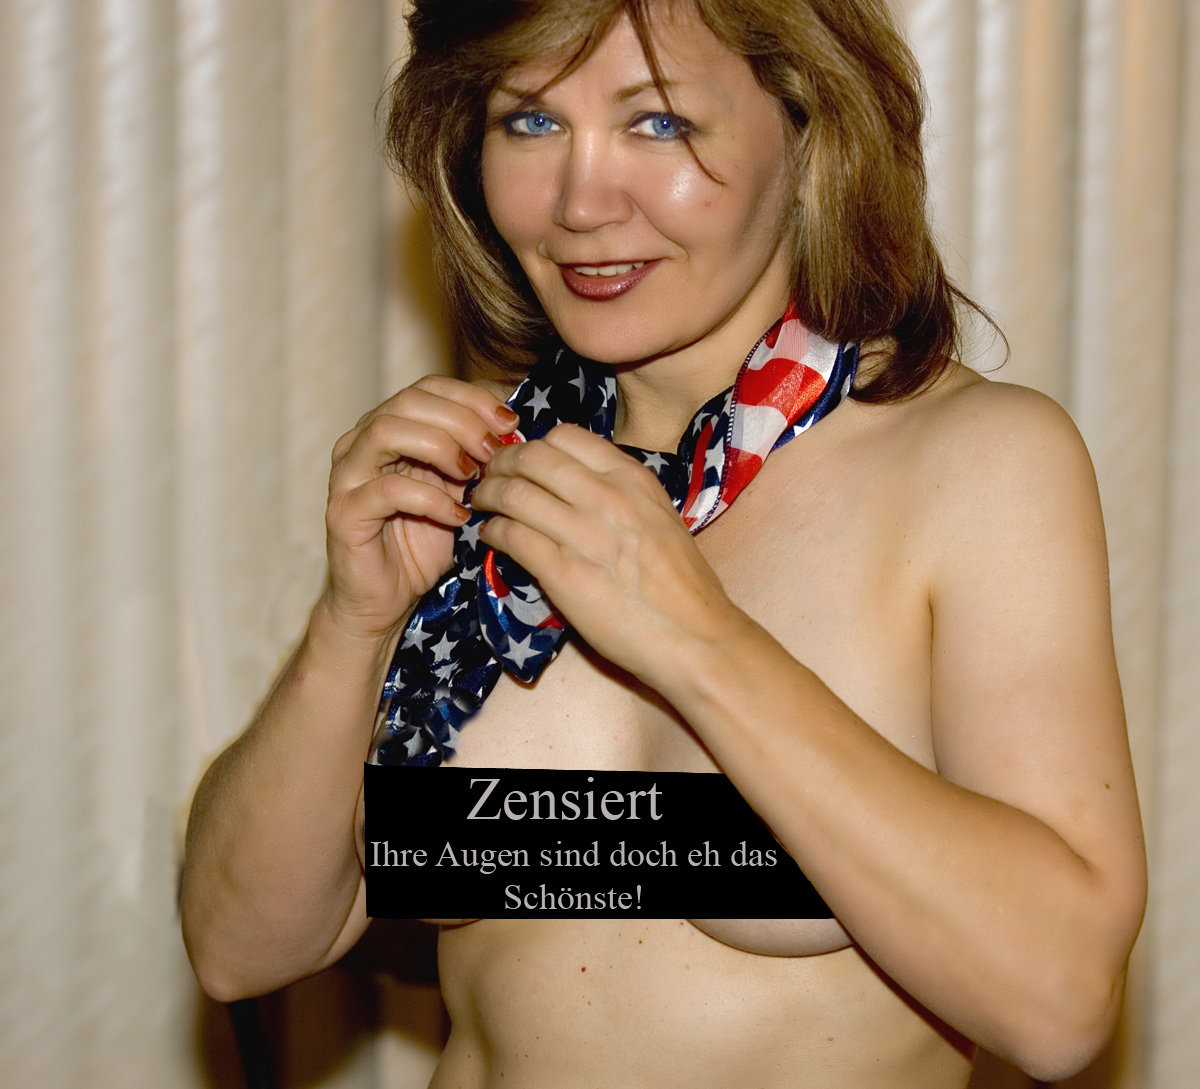 tyNTVLn mom-stars-stripes-zensiert